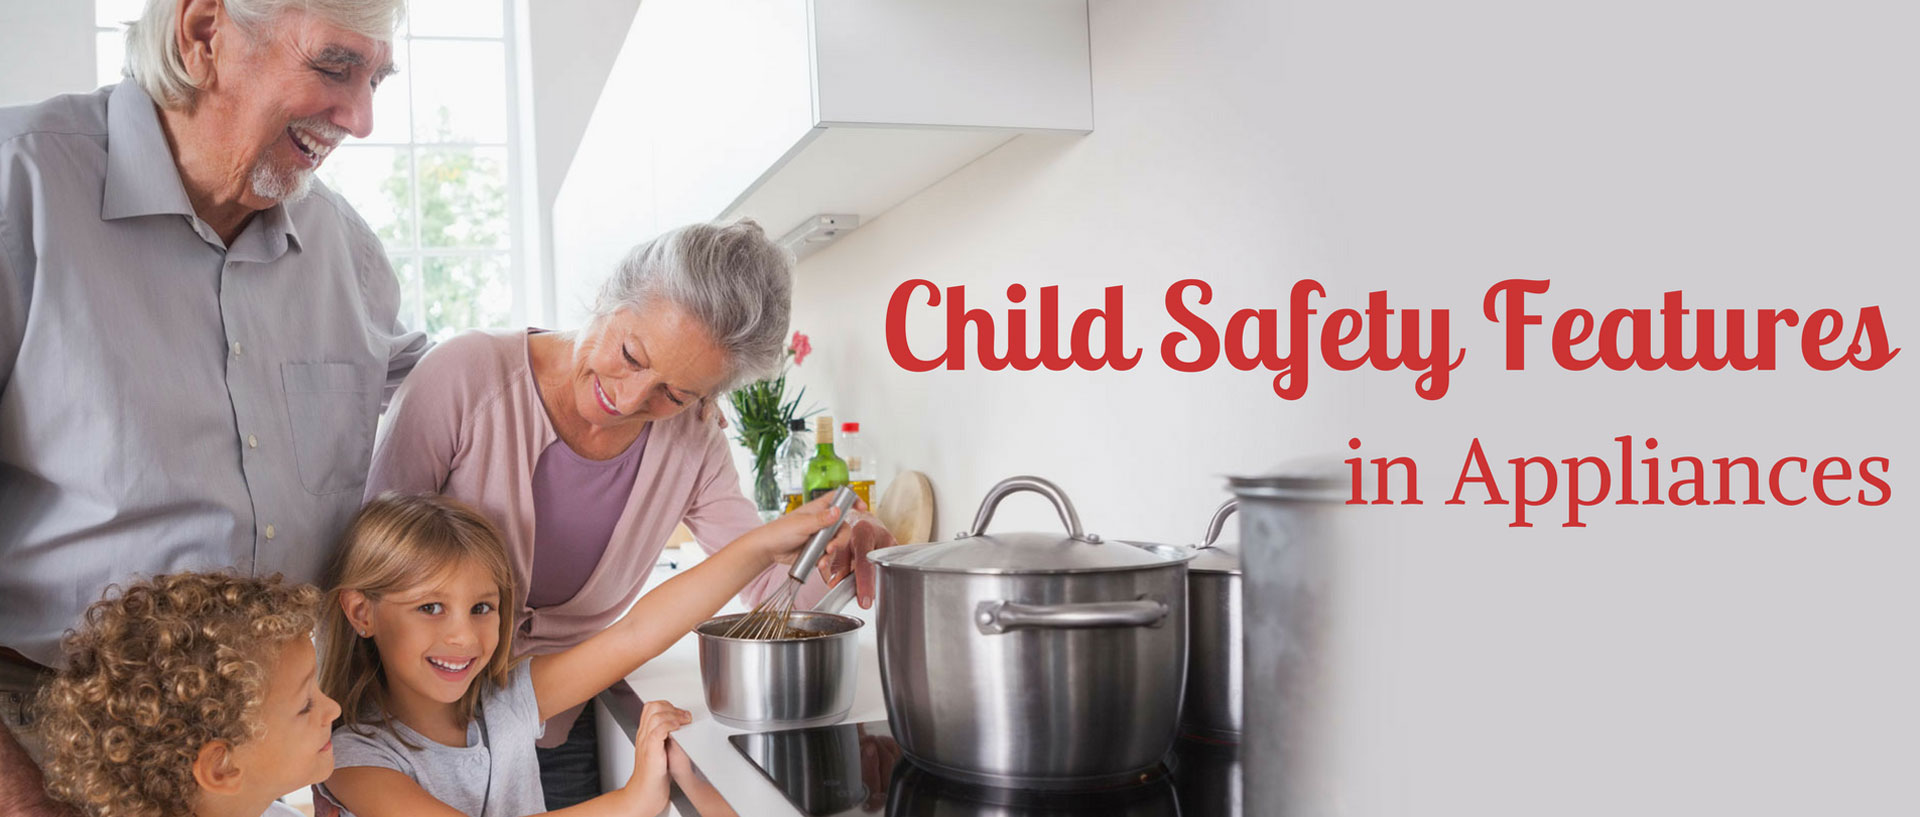 Child Safety Features in Appliances